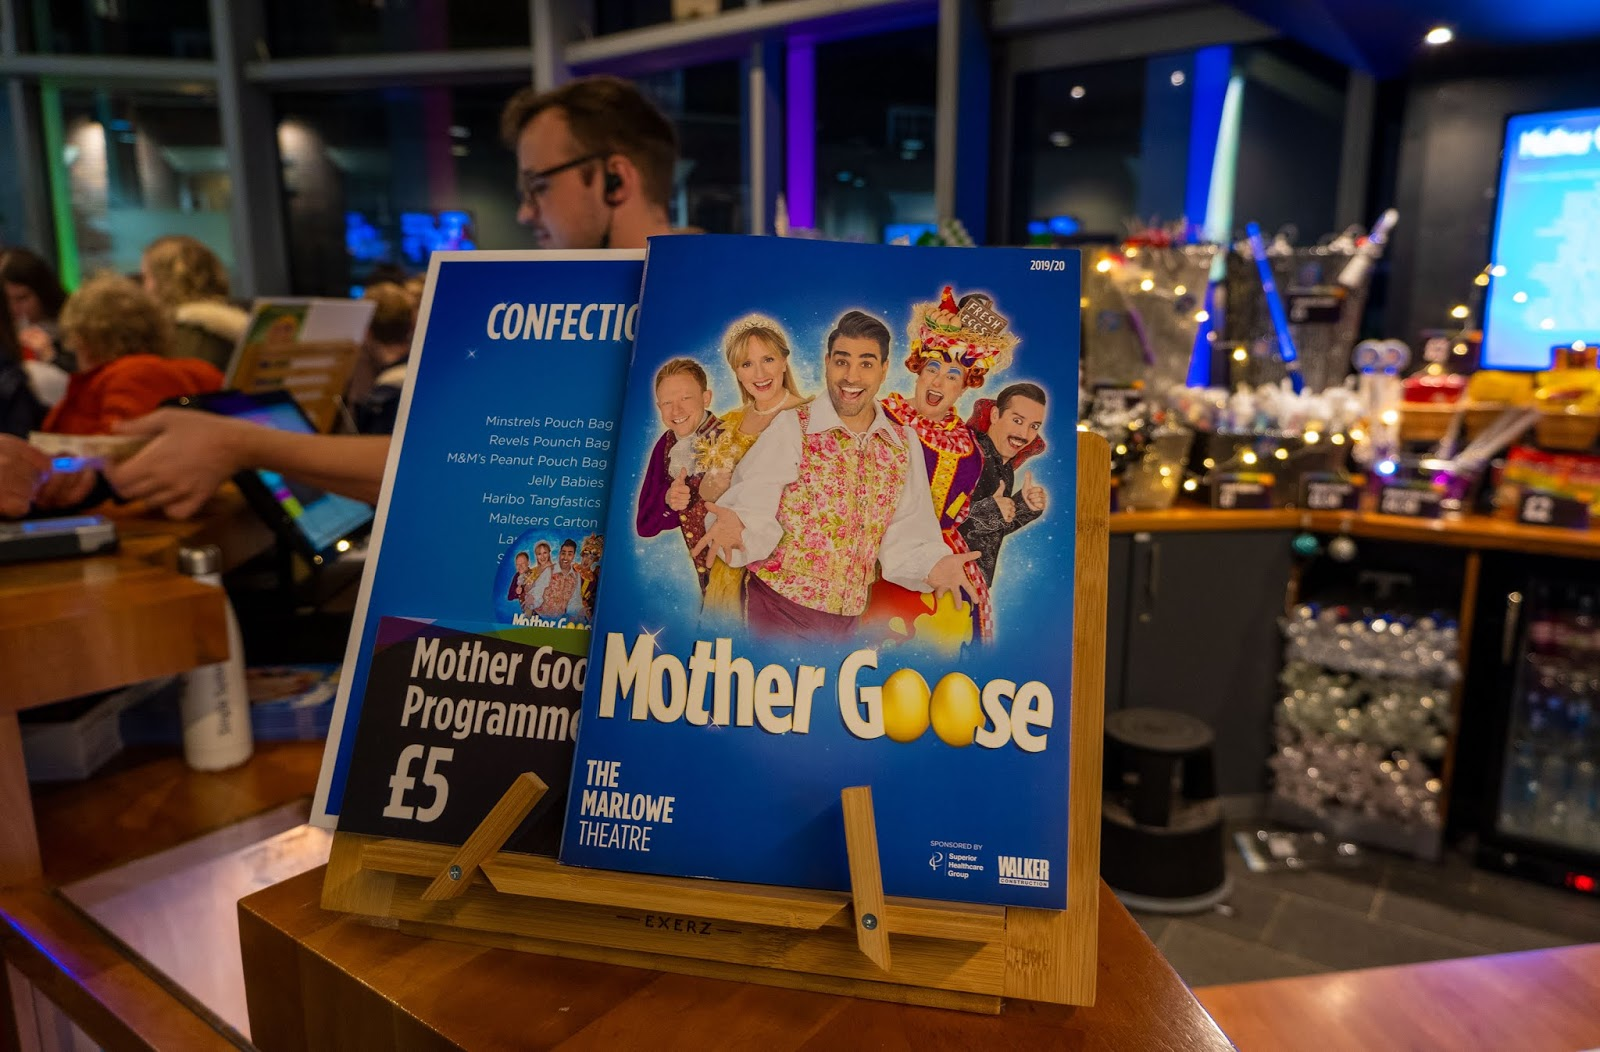 Mother Goose gift shop at the Marlowe Theatre, Canterbury